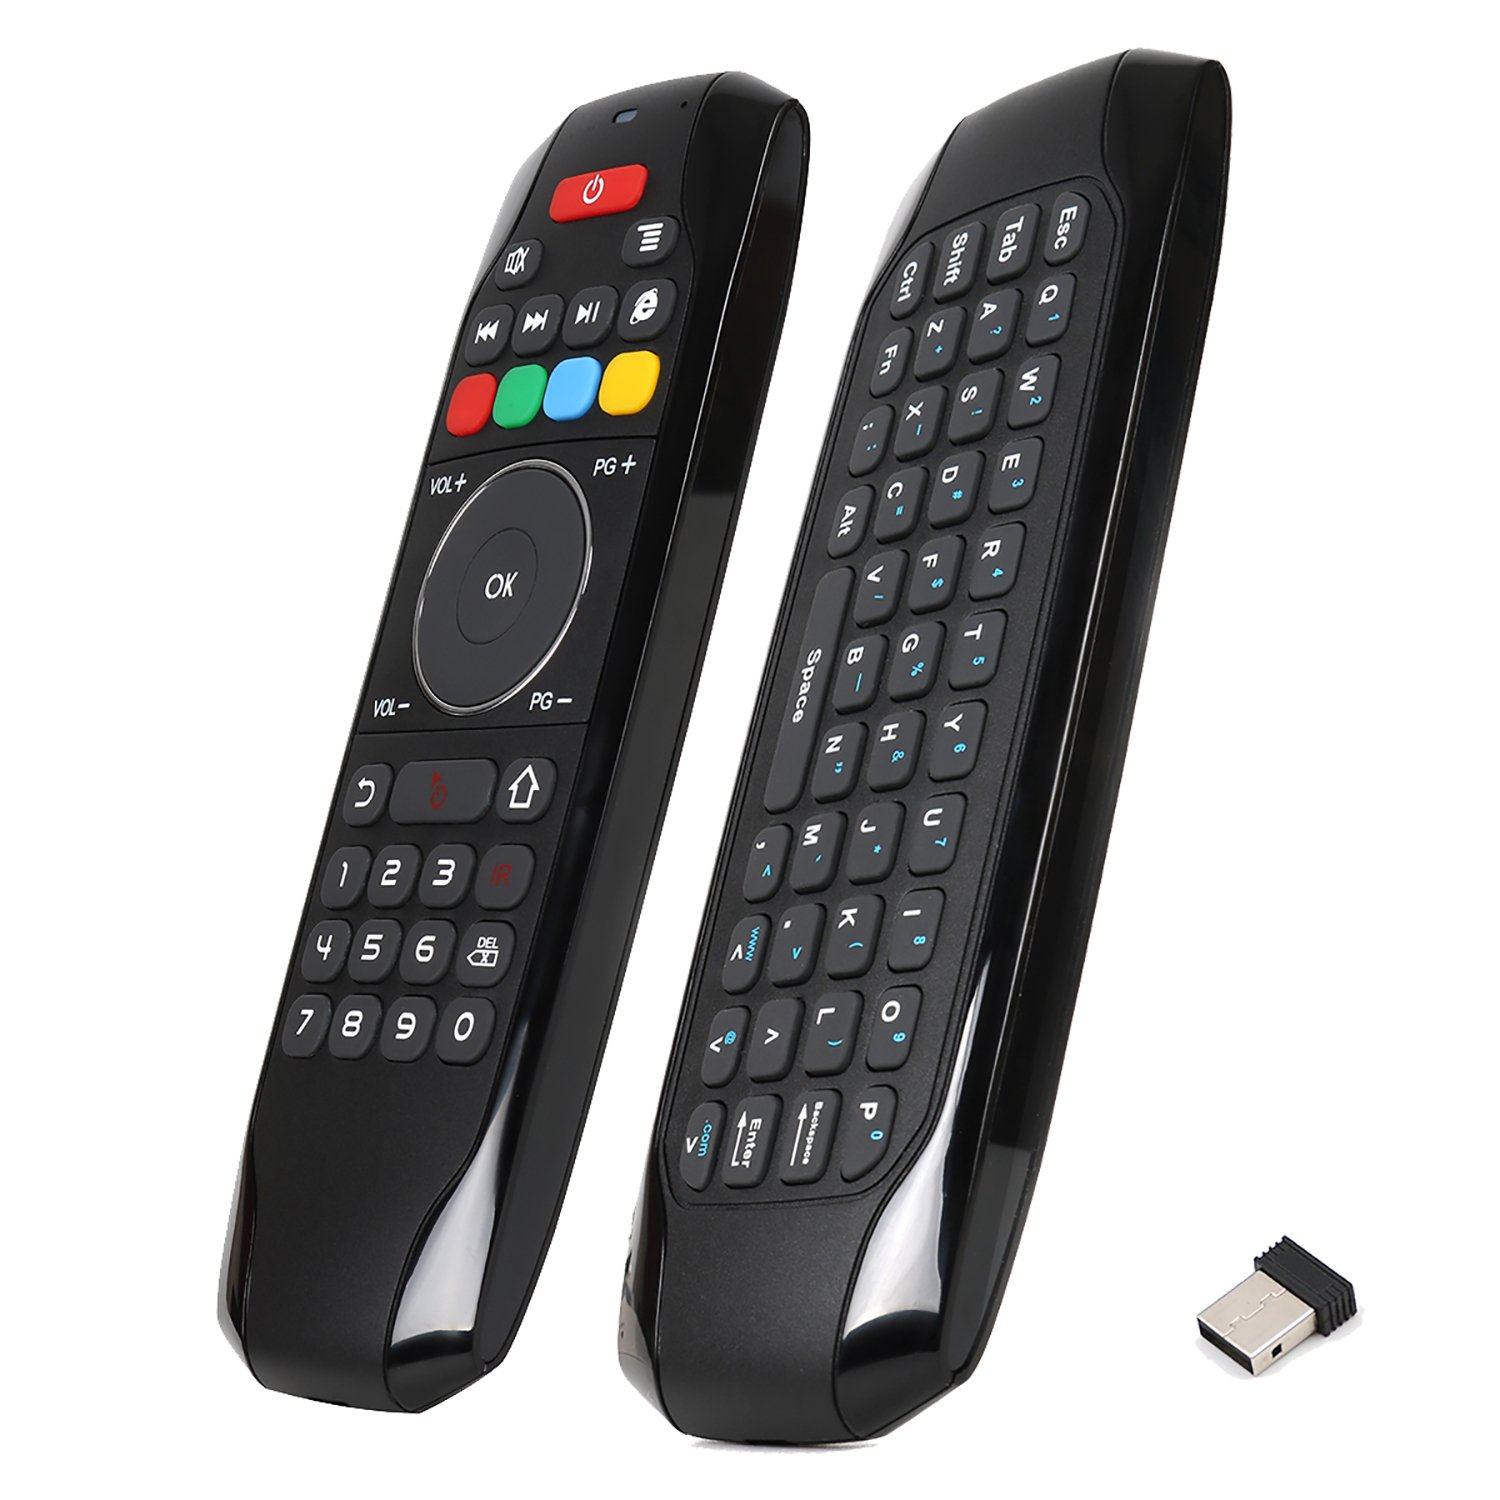 Air Mouse Remote, PTVDISPLAY 2.4G IR Learning Mouse Remote Control with Keyboard for Android TV Box Smart Projector MAC Pad HTPC iOS PC Windows Computer (Black) PTV-G7